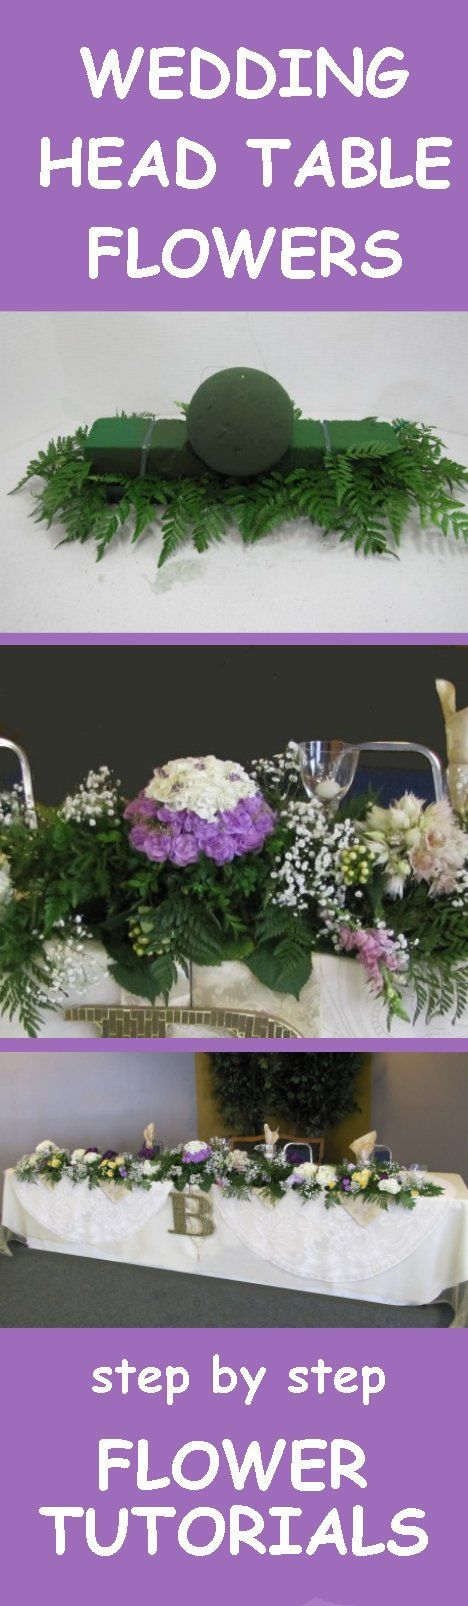 Wedding Head Table - Free Reception Flower Tutorials Learn how to ...